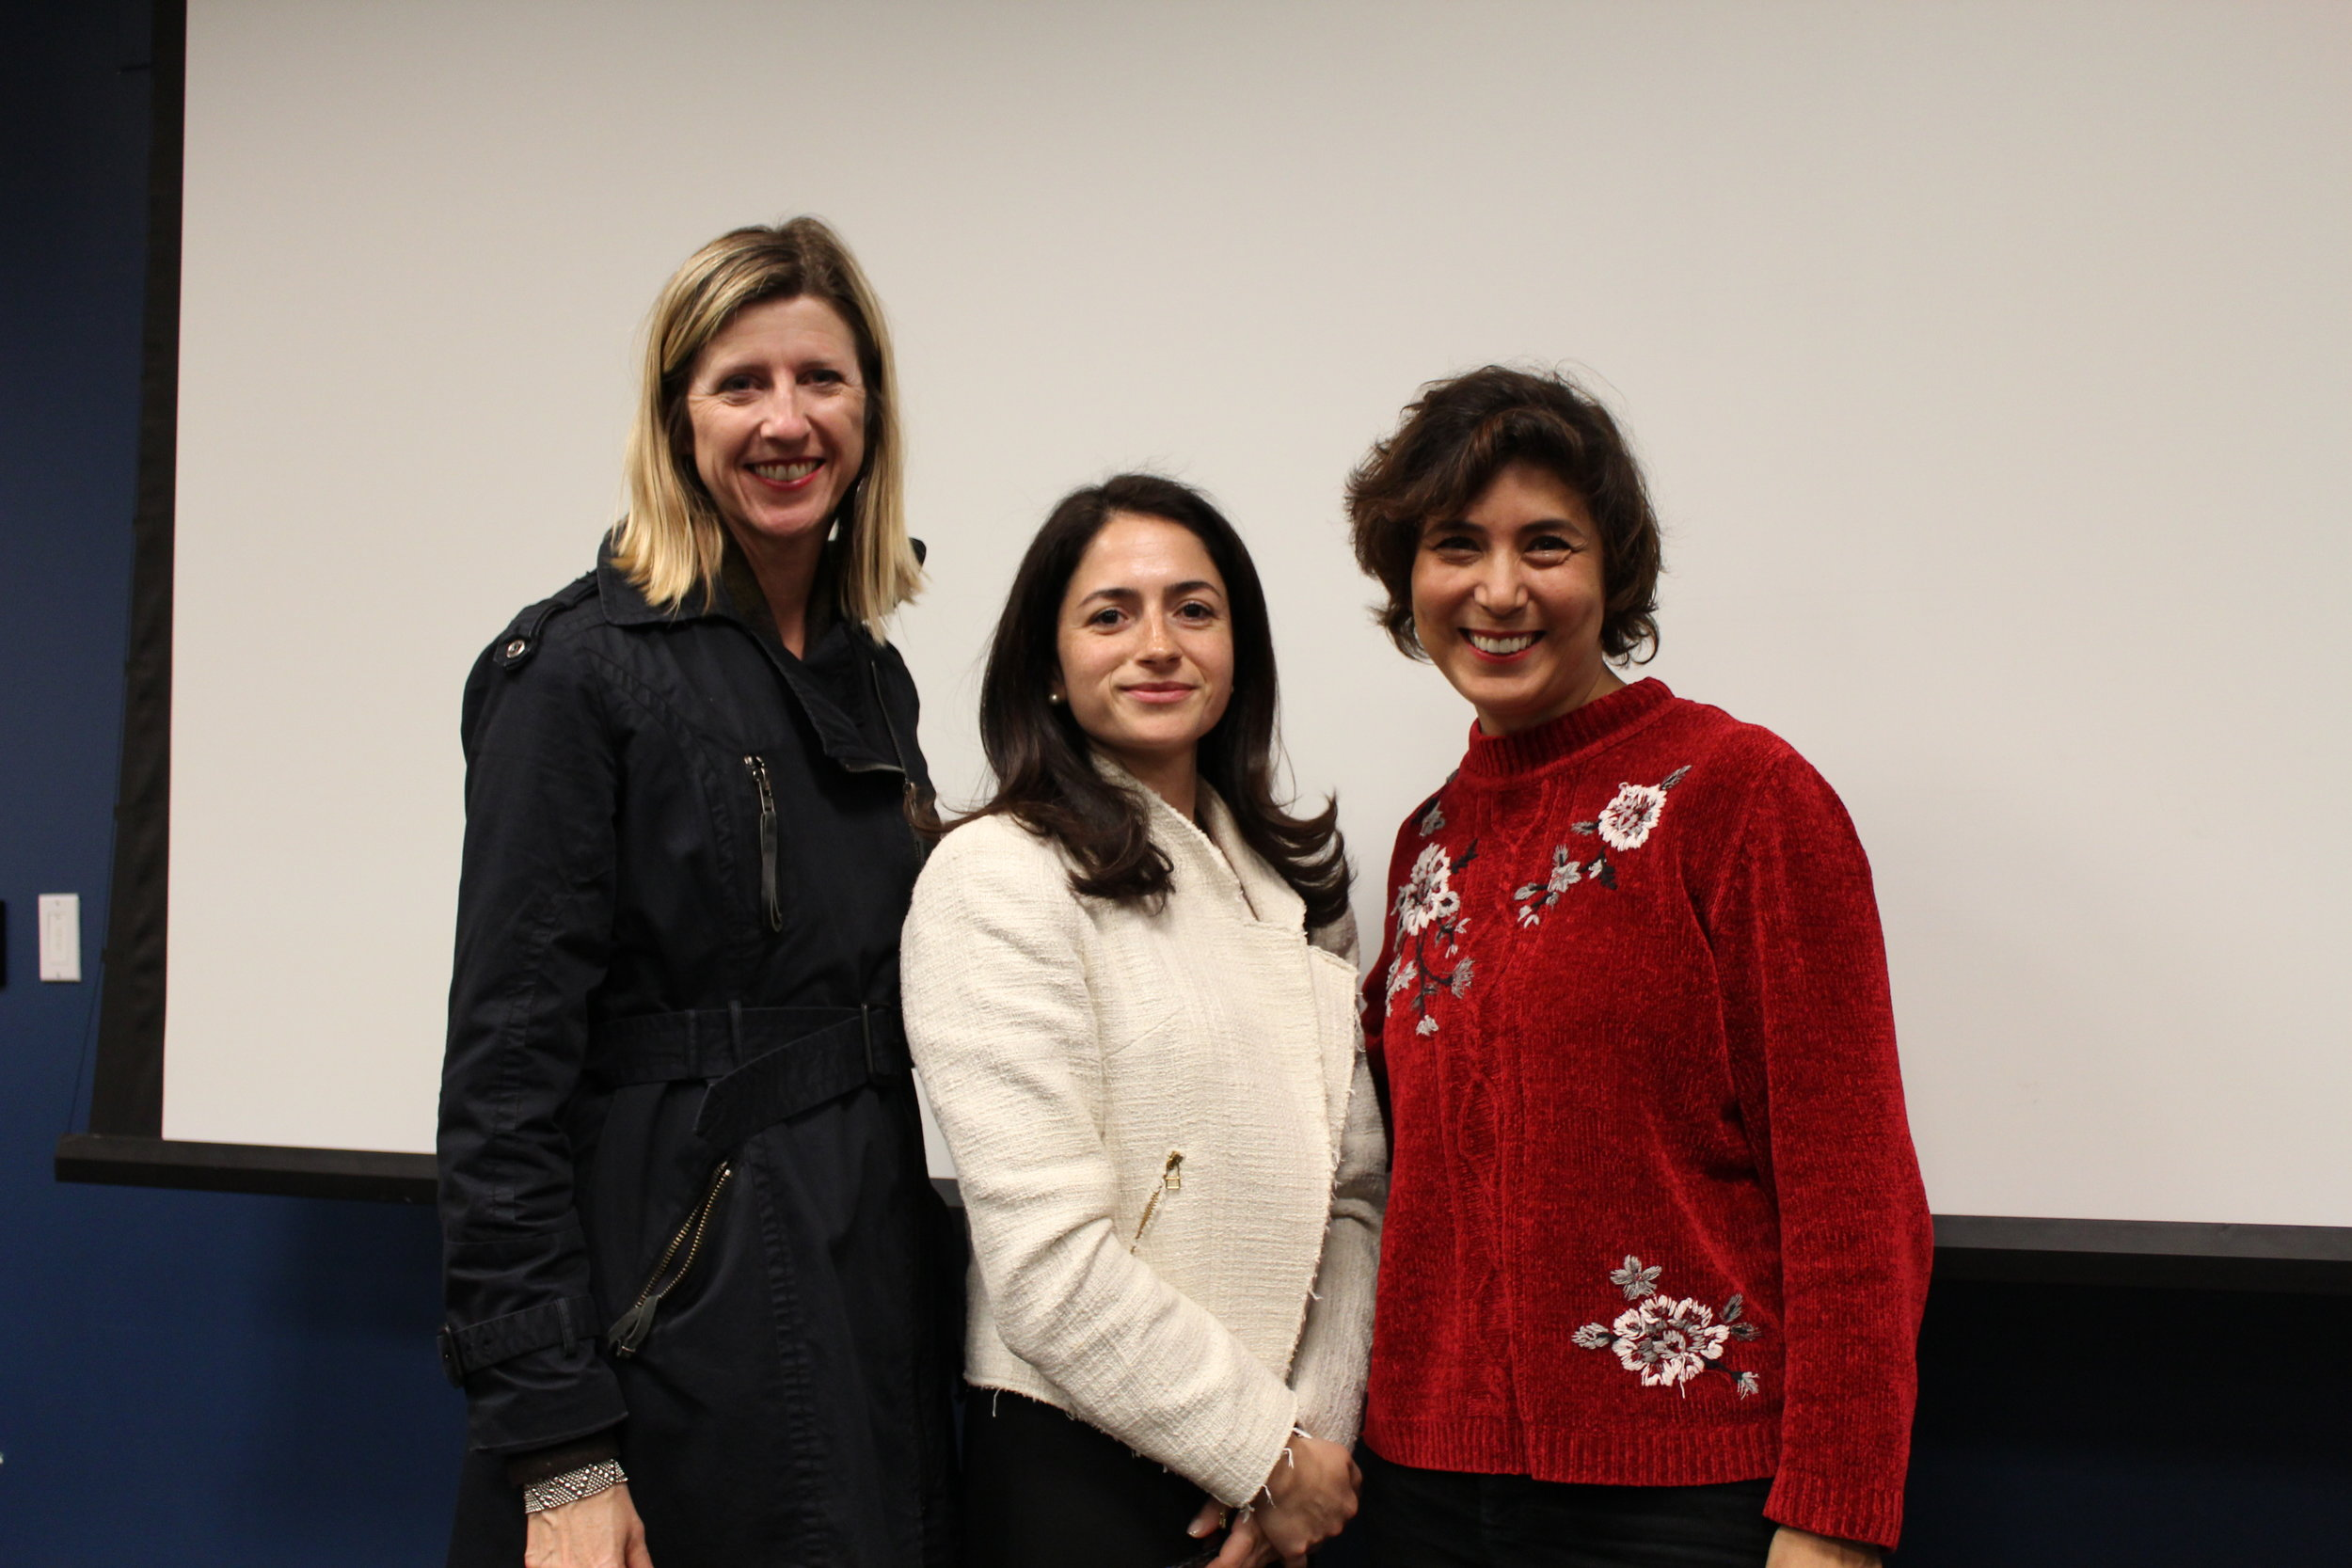 GlocallyConnected founders, Dr. Selin Nielsen and Sherry Mackay with the Turkish Consul General Los Angeles.